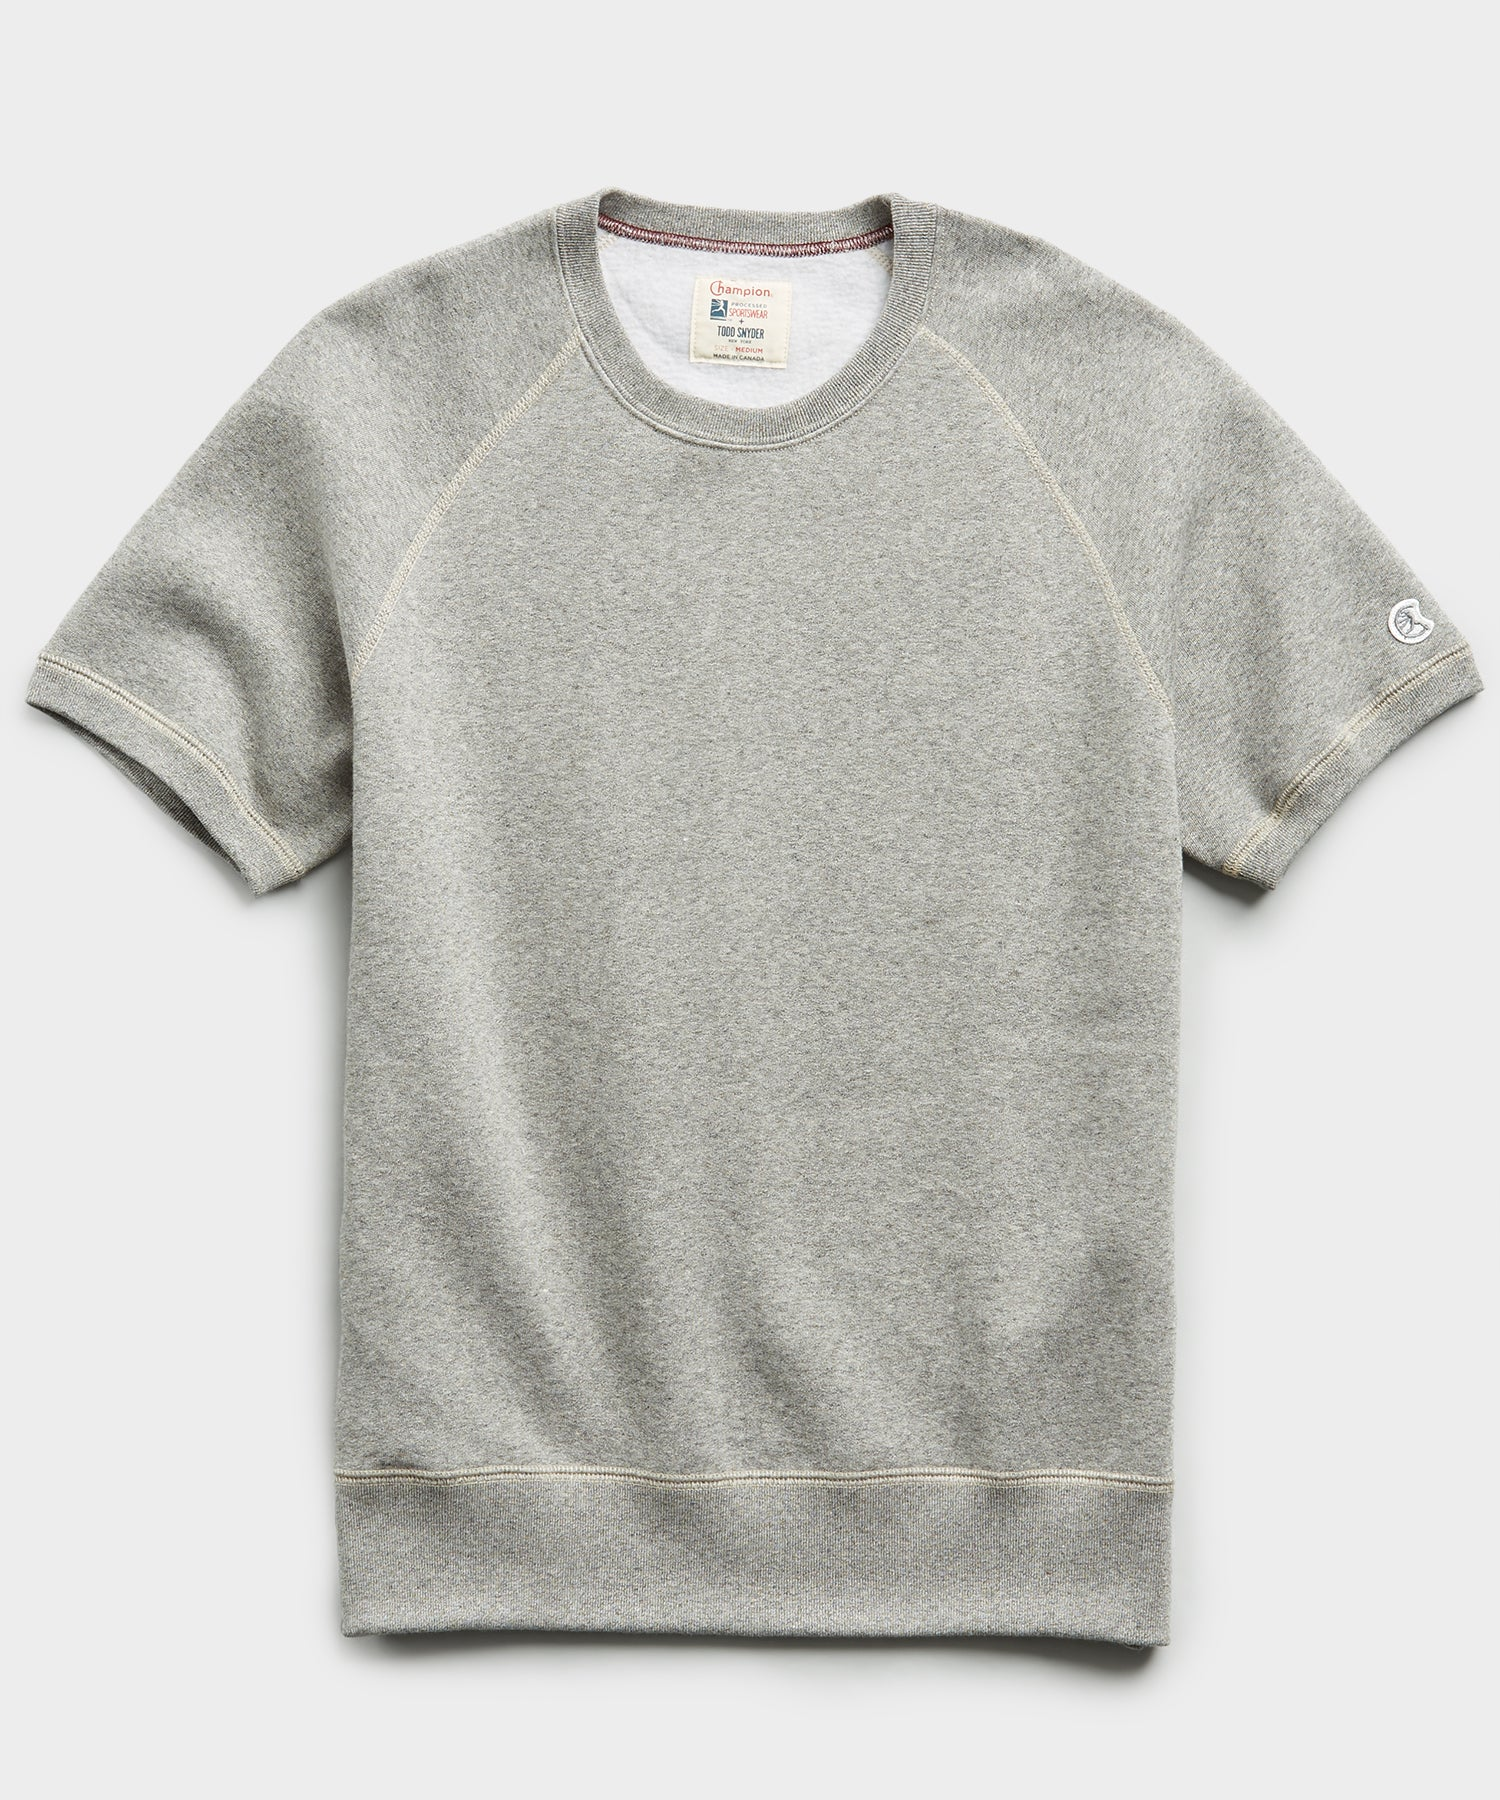 Heavyweight Short Sleeve Sweatshirt in Light Grey Mix